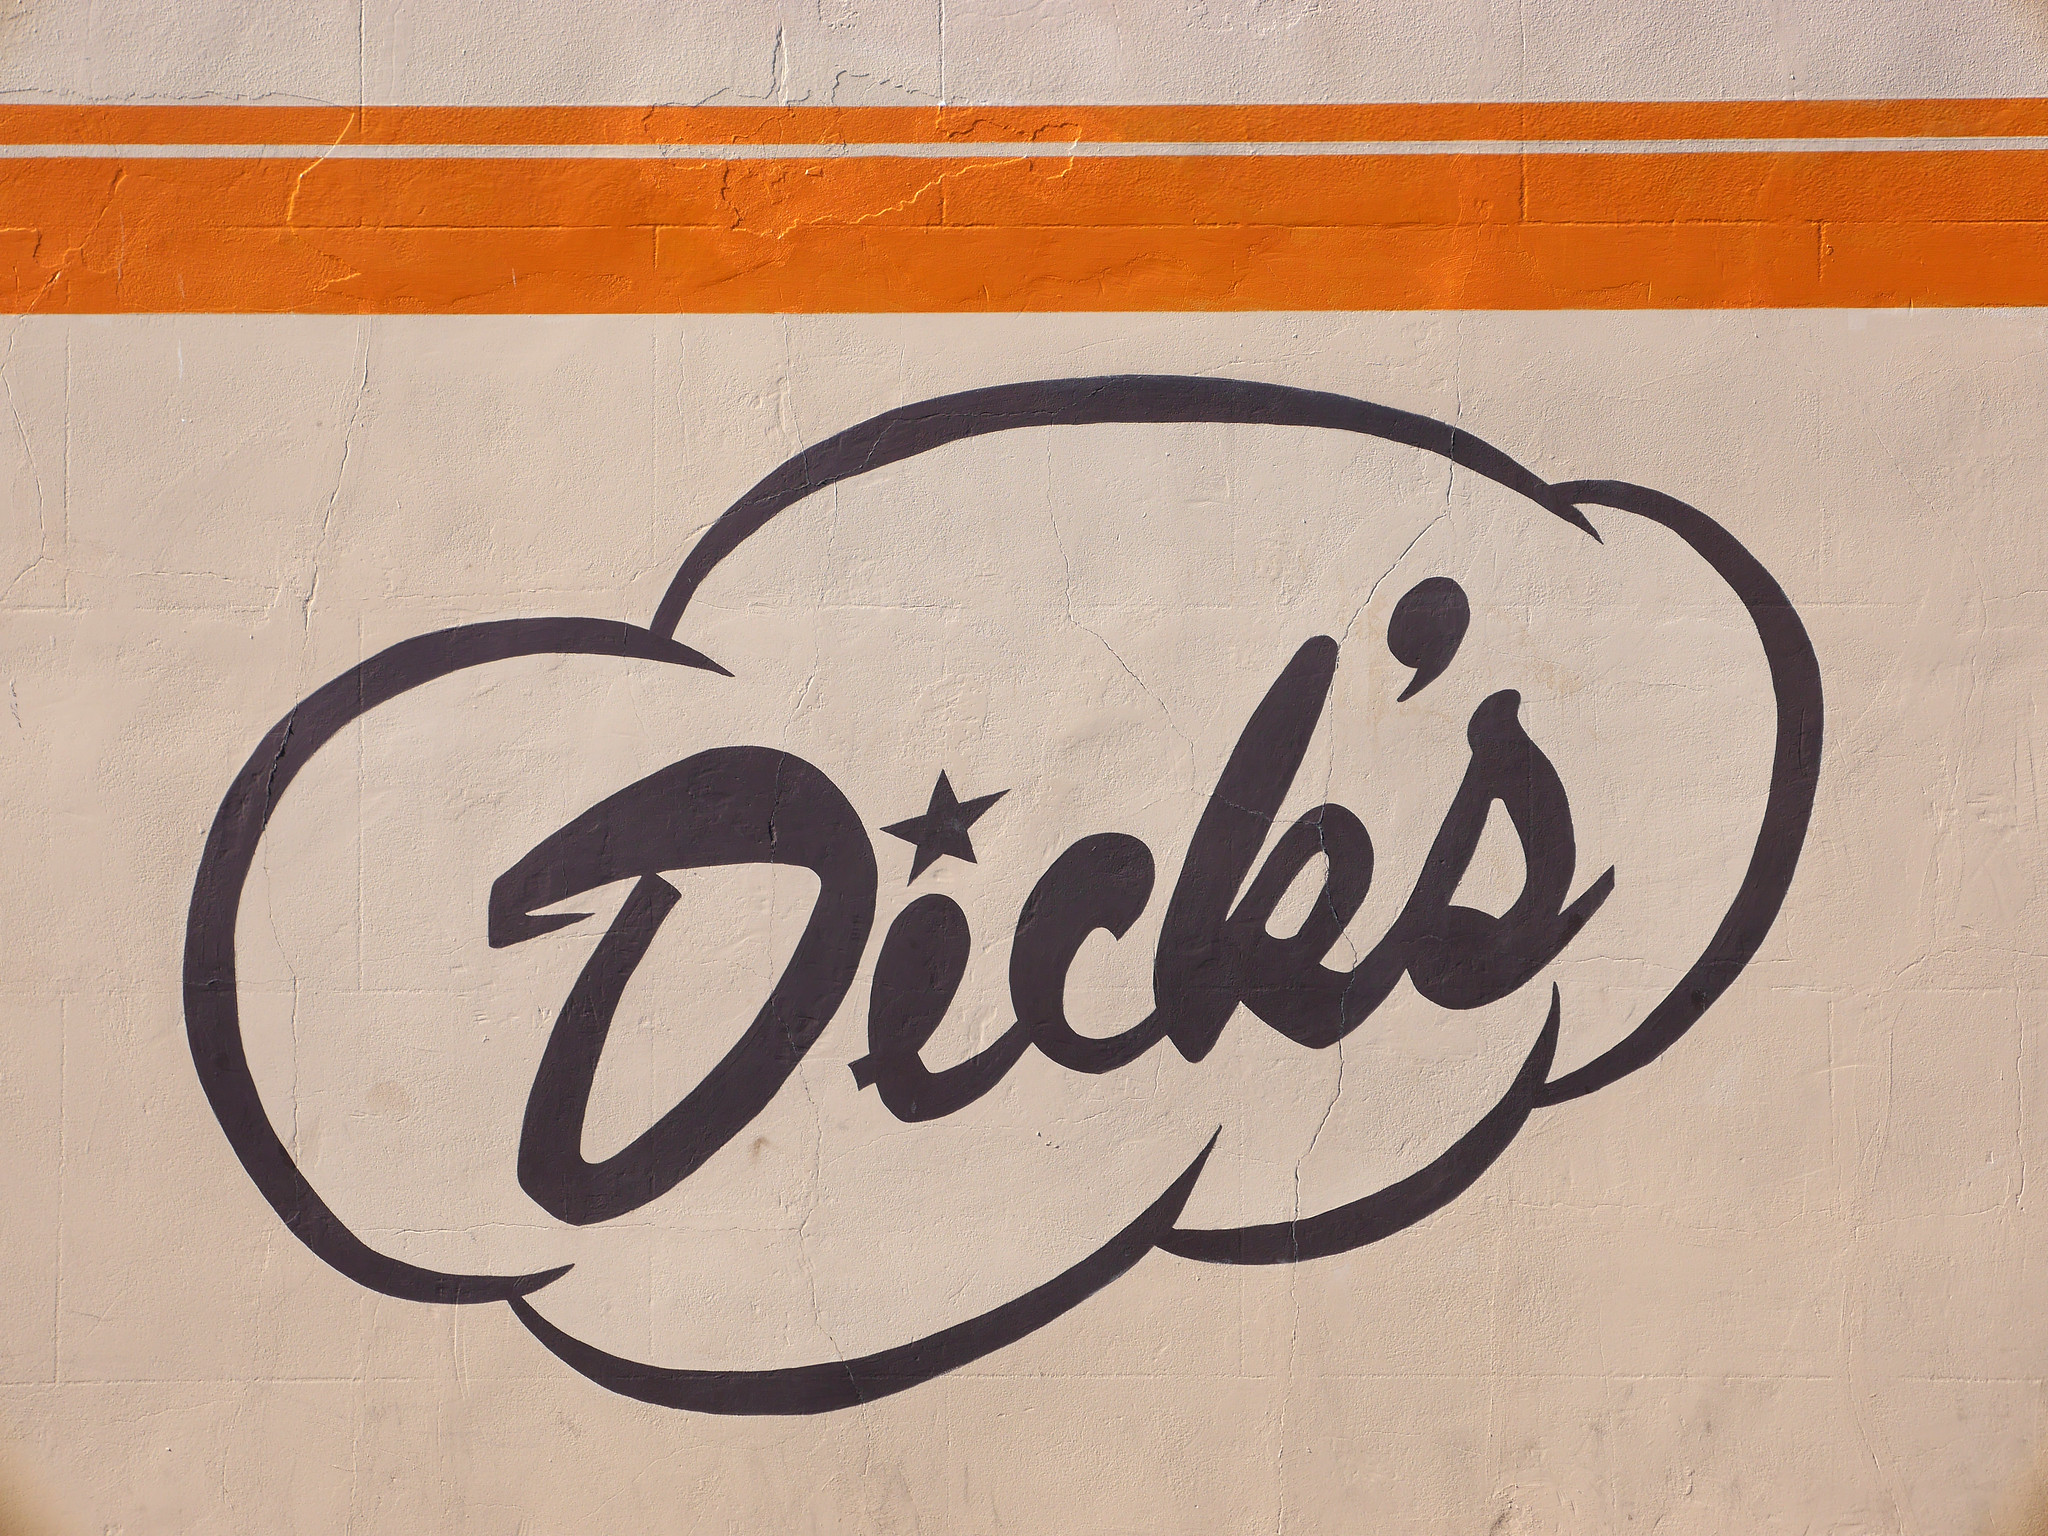 Dick's Drive-in logo on restaurant wall